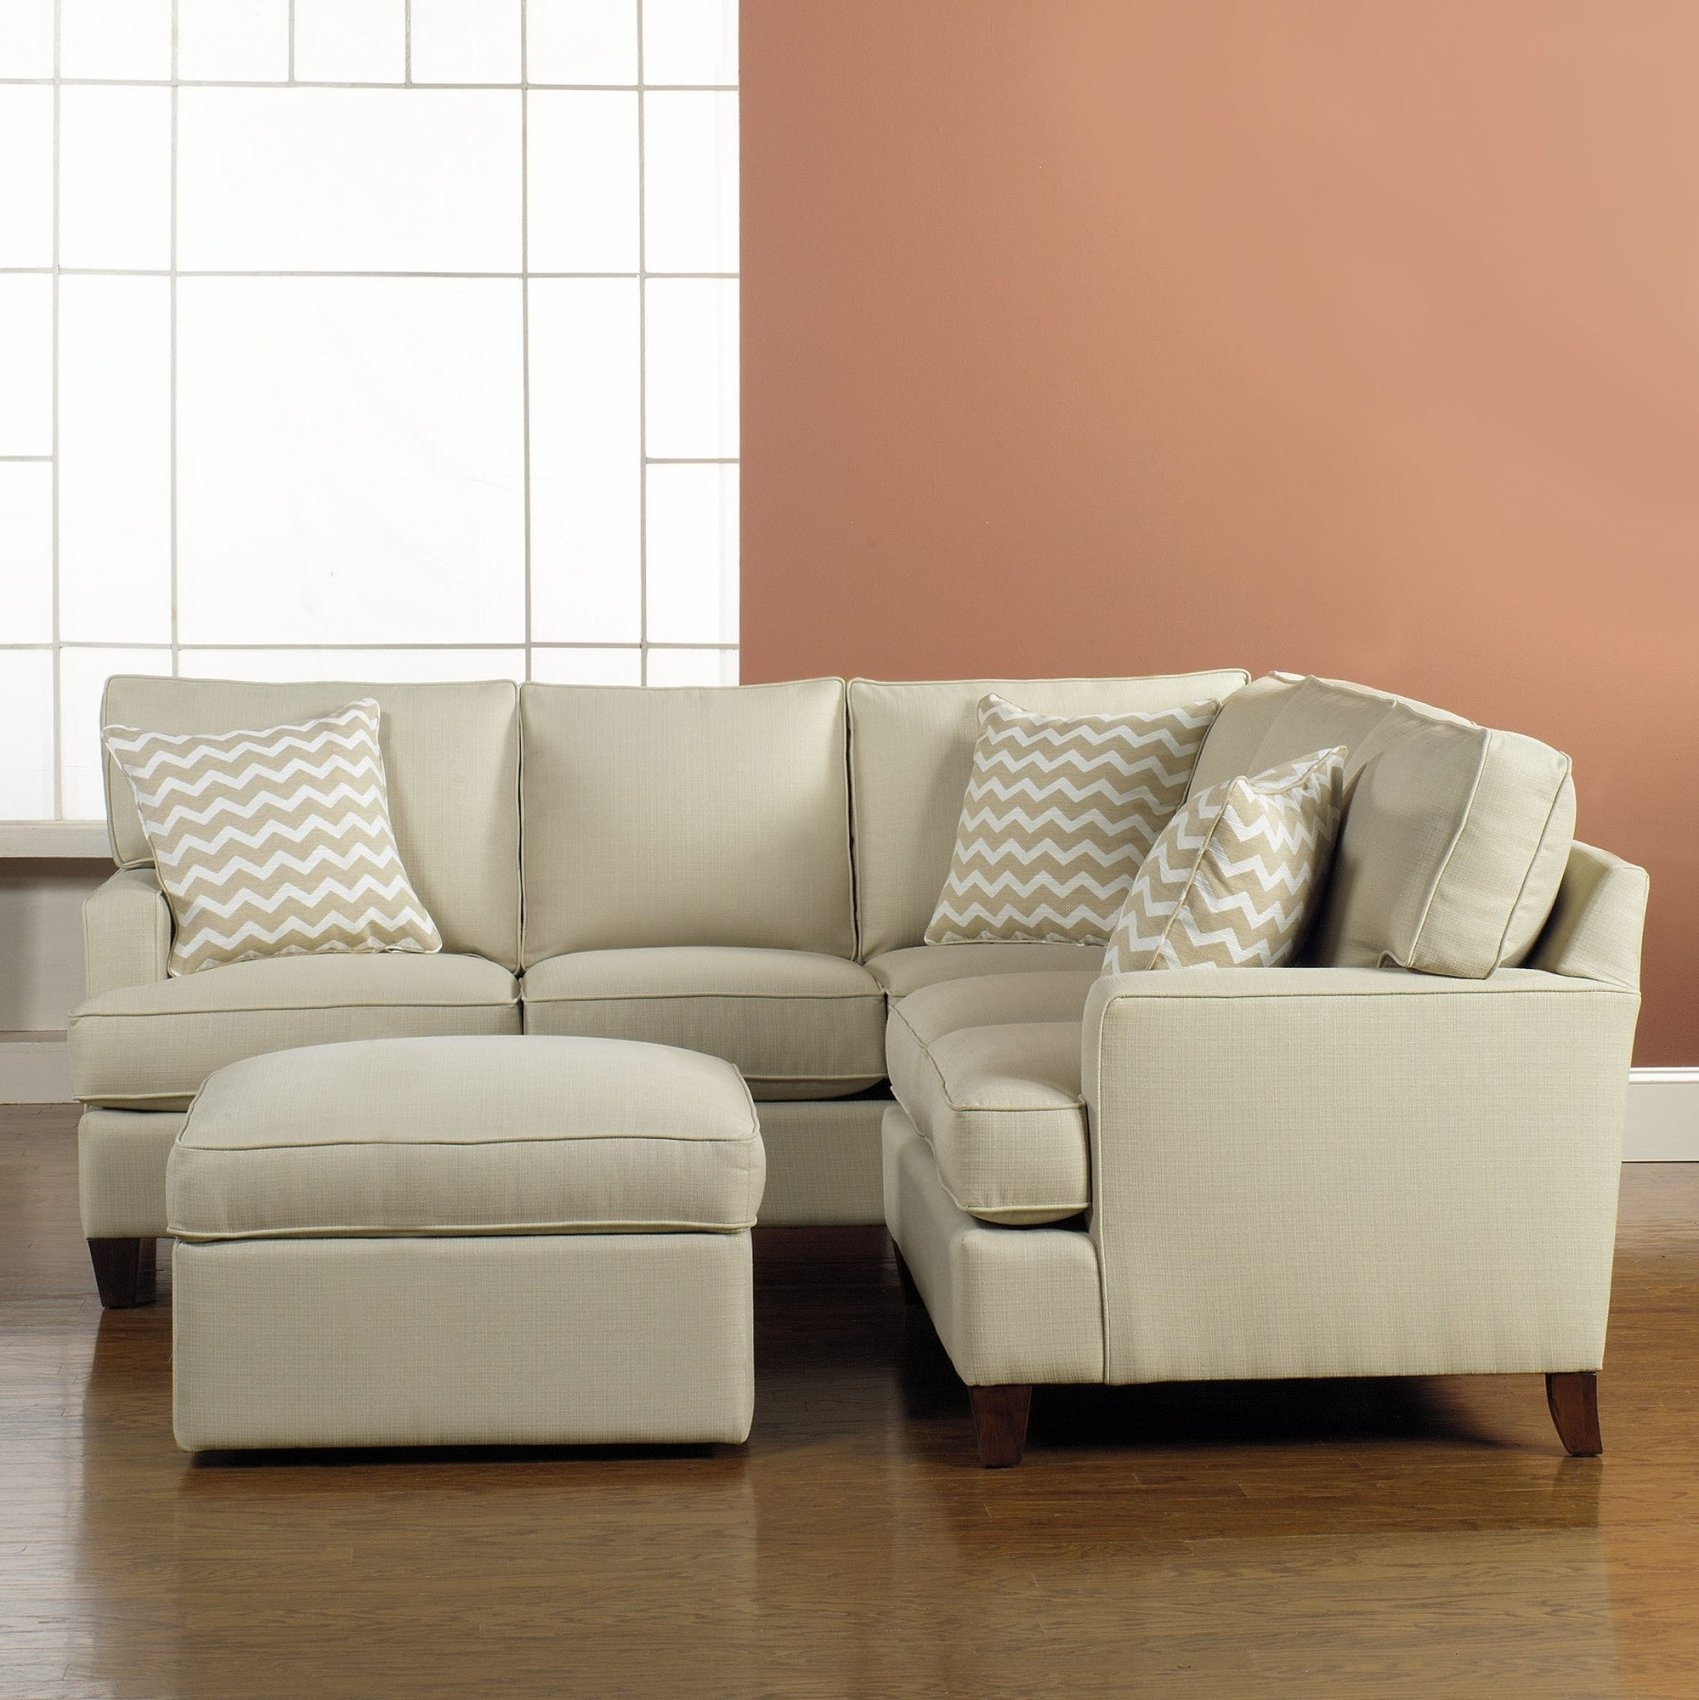 Startling Sectionals For Small Spaces Sectional Sofa 94 In Living Inside Small Spaces Sectional Sofas (View 5 of 10)